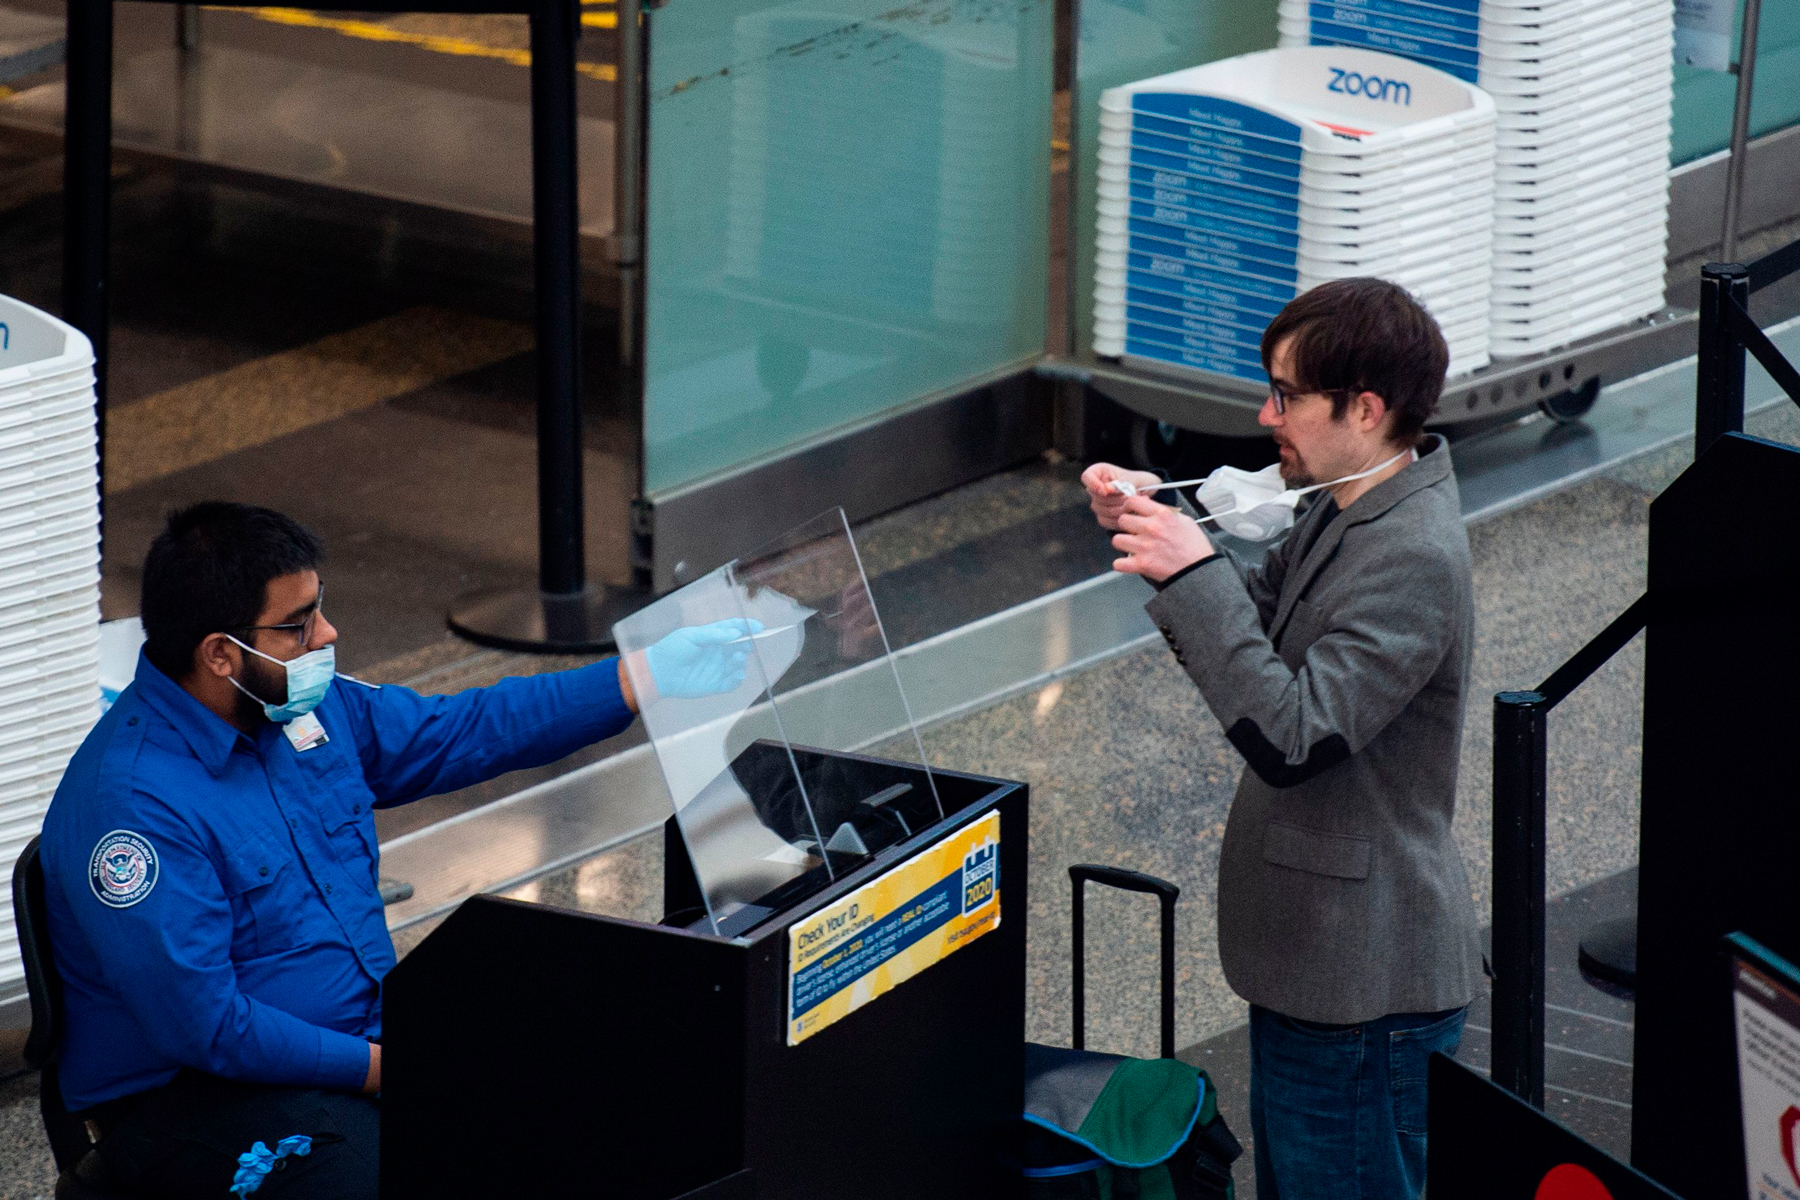 A passenger removes his mask as he has his ID checked by a Transportation Security Administration